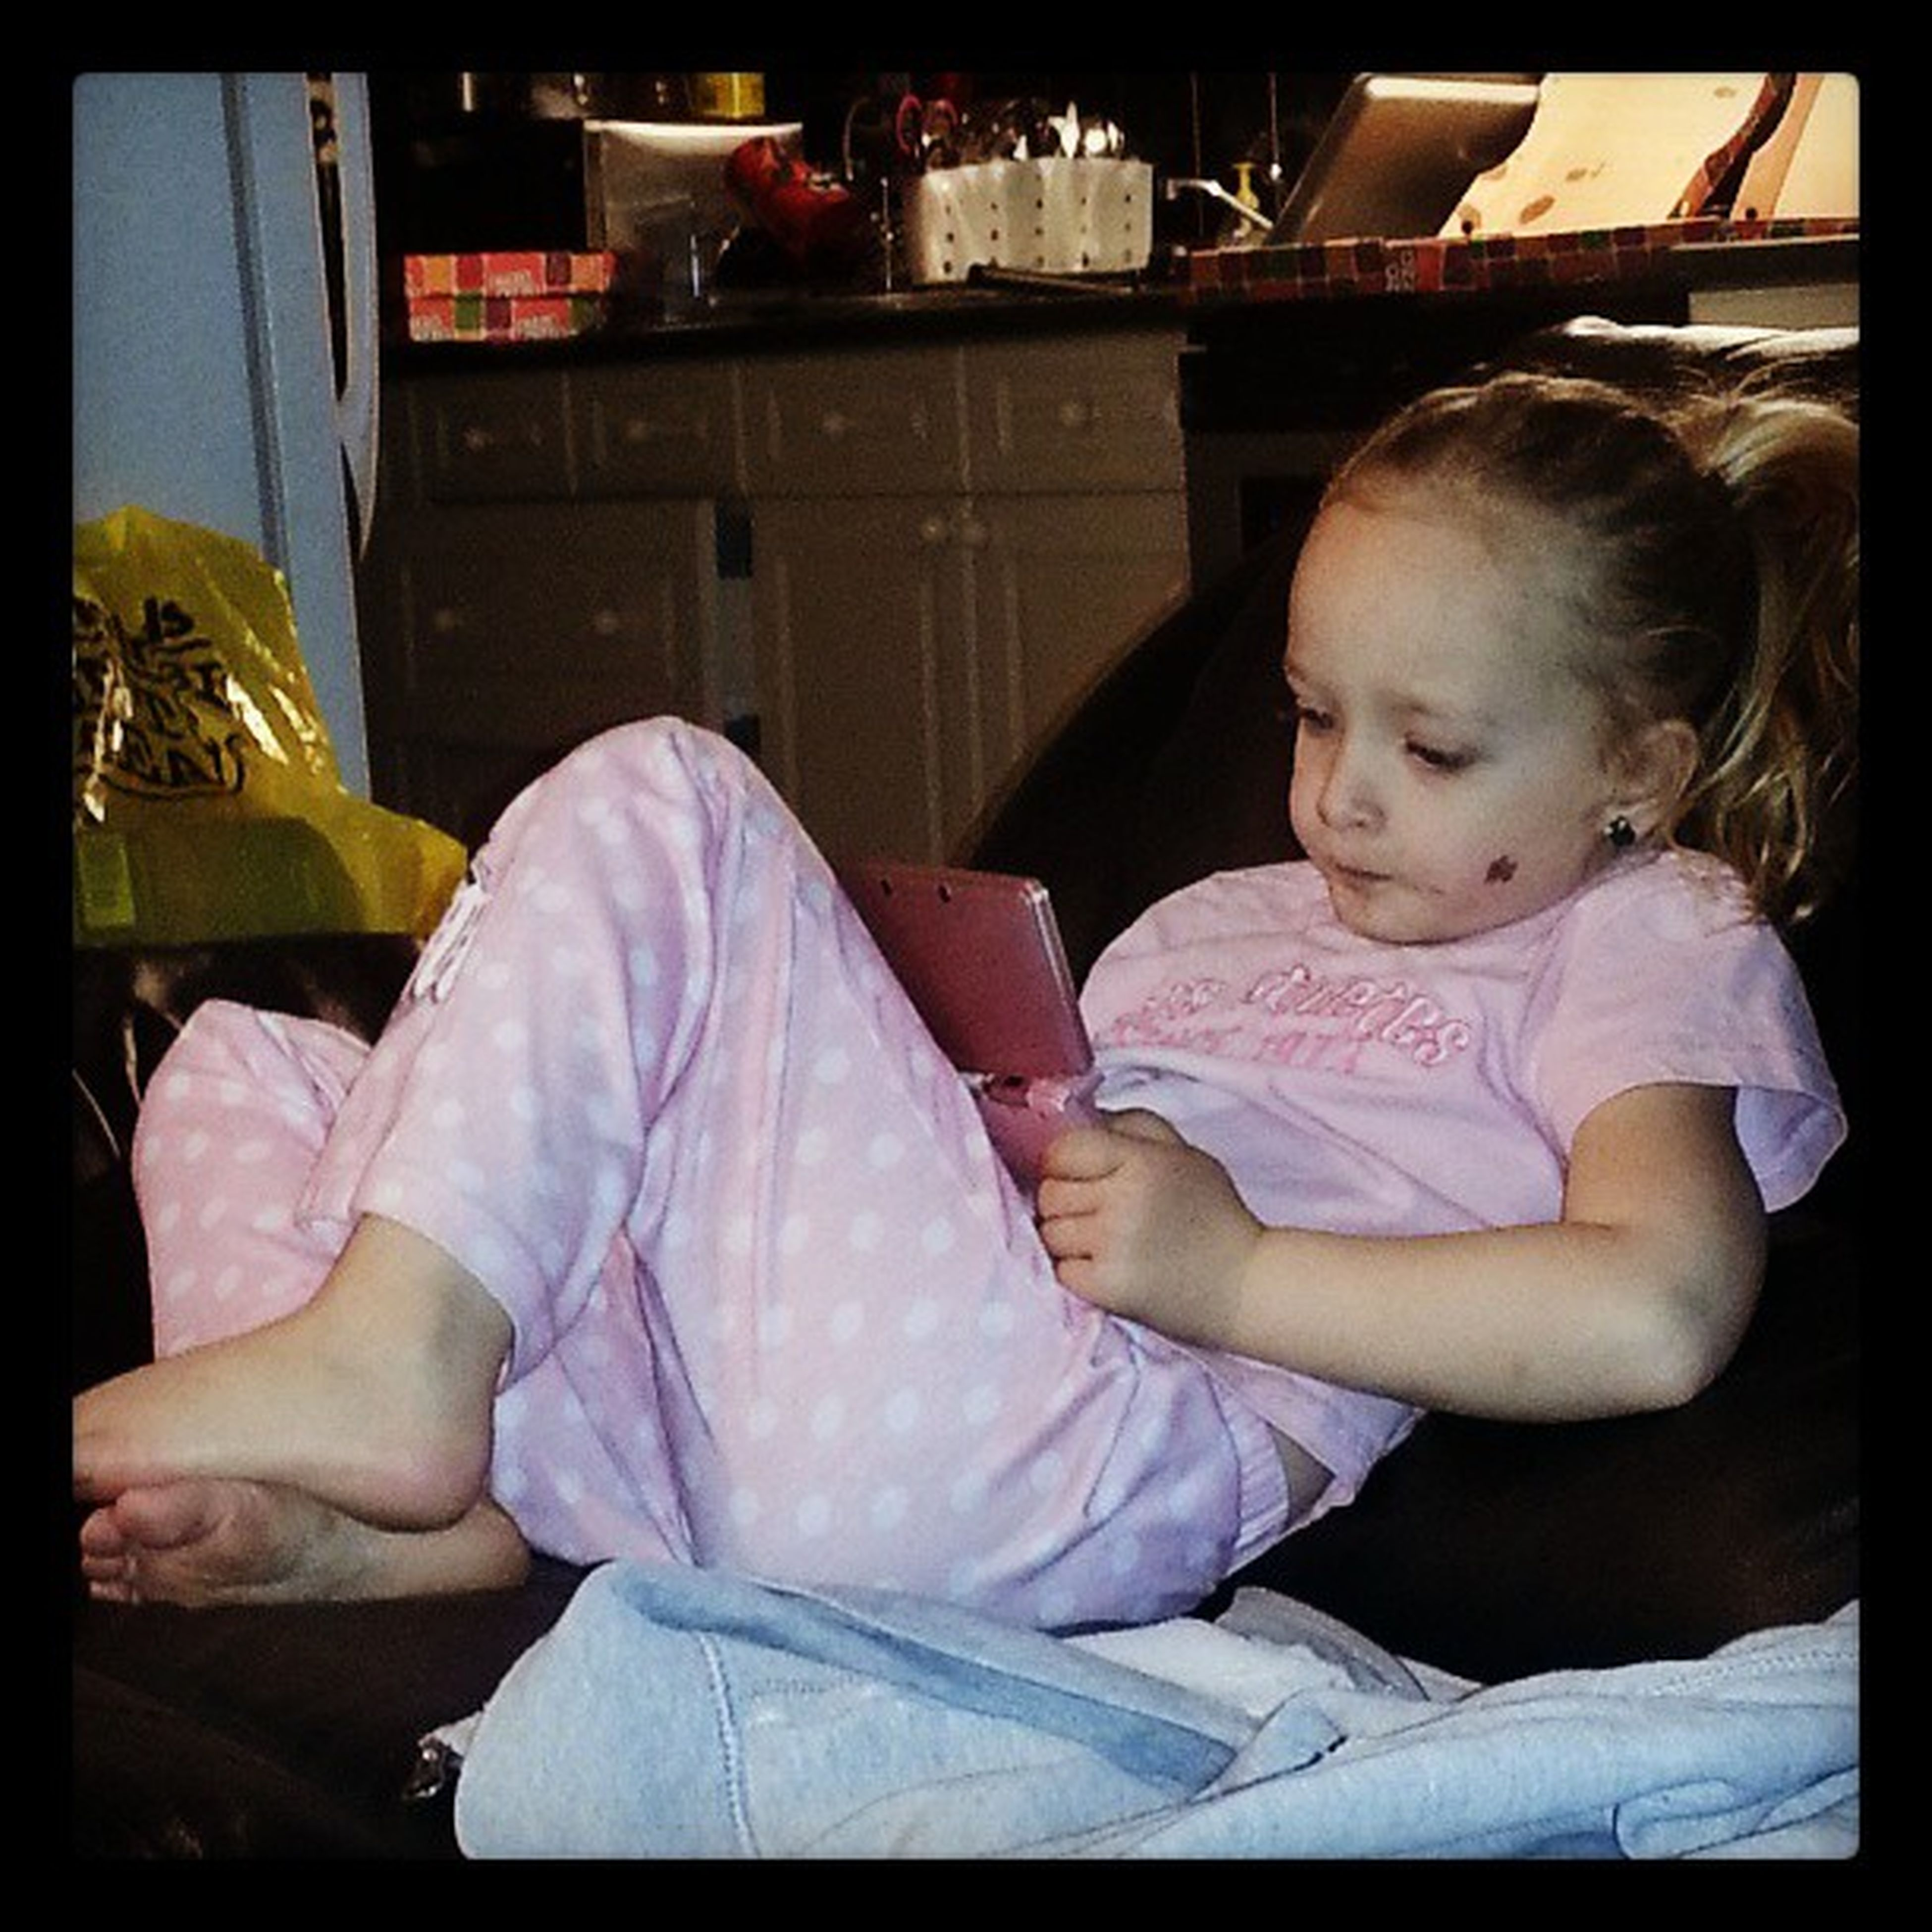 my niece playing with her Ds MyNiece GamerInTheMaking PINKeverything Reclined Comfortable